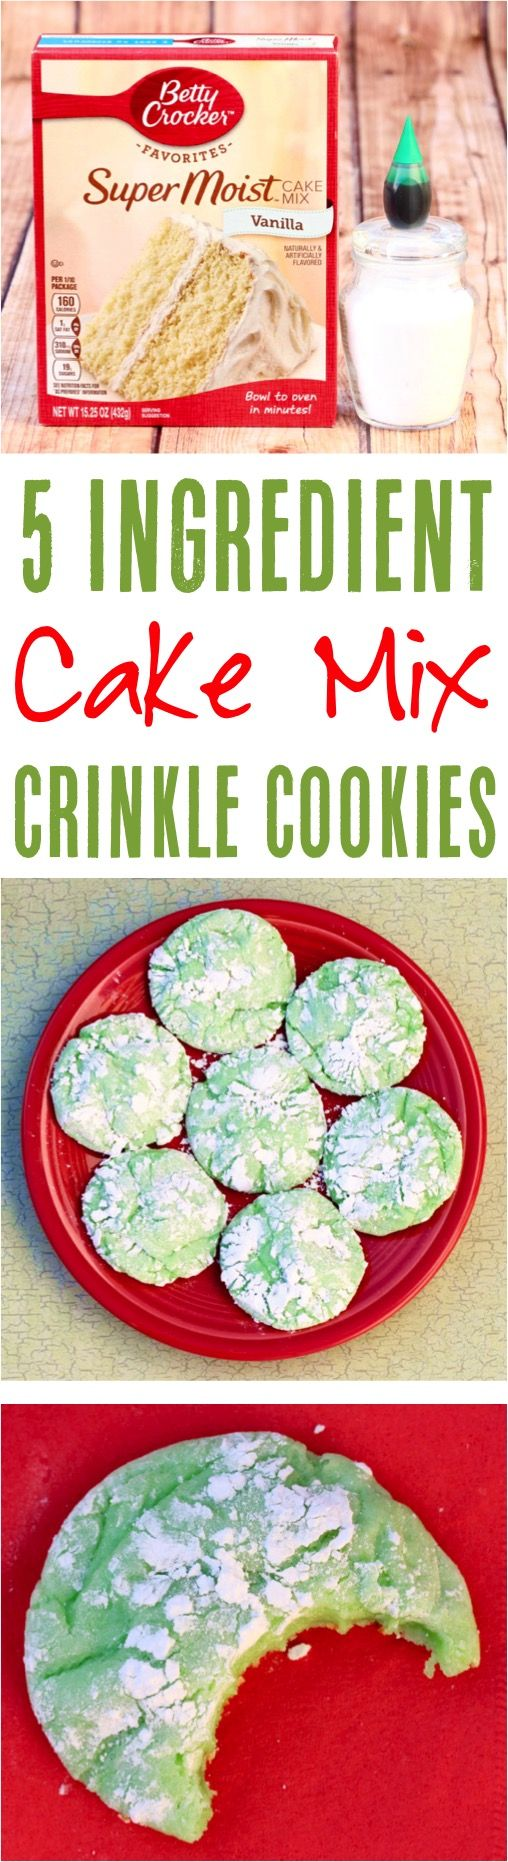 Green Crinkle Cookie Recipe! {St Patrick's Day Cookies}